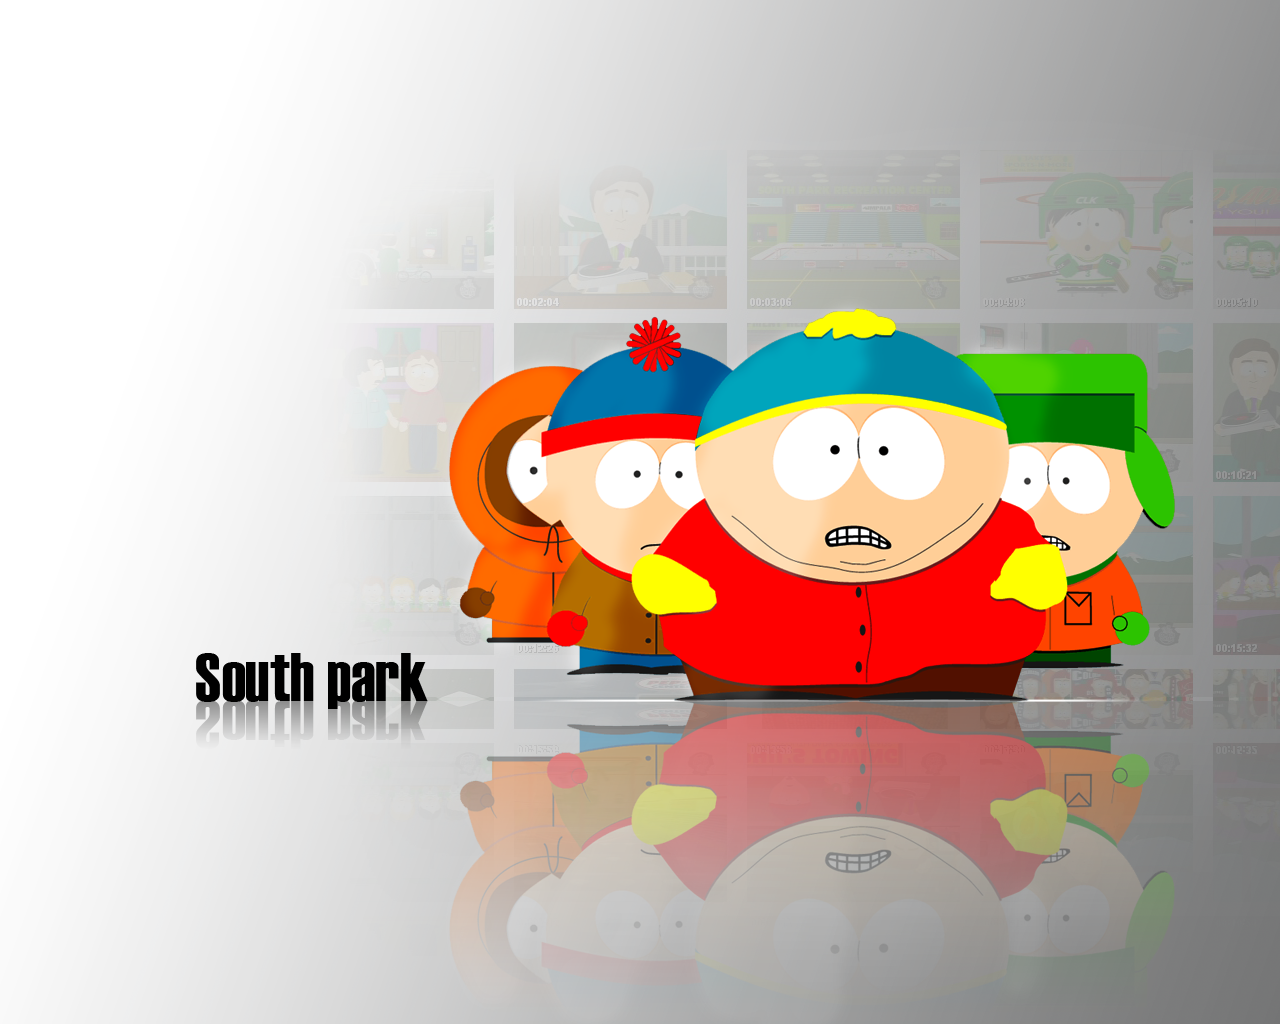 cartman finds love south park watch online Watch south park season 16 episode 7 online streaming at couchtuner watch it here : south park season 16 episode 7 cartman finds love previous episode.